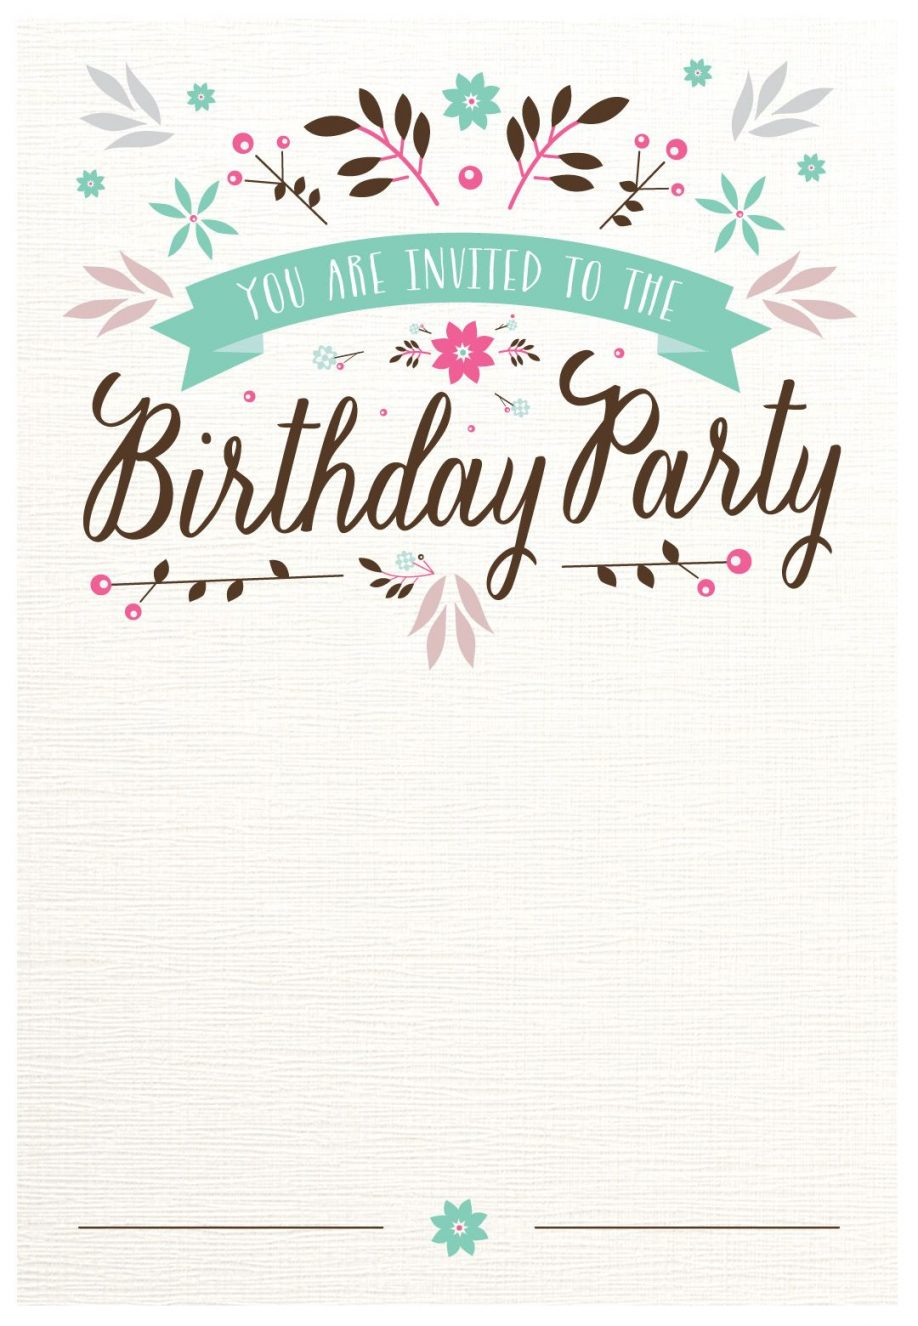 Birthday Inviation Template Invitation Templates Free Online 30Th - Free Printable Invitation Maker